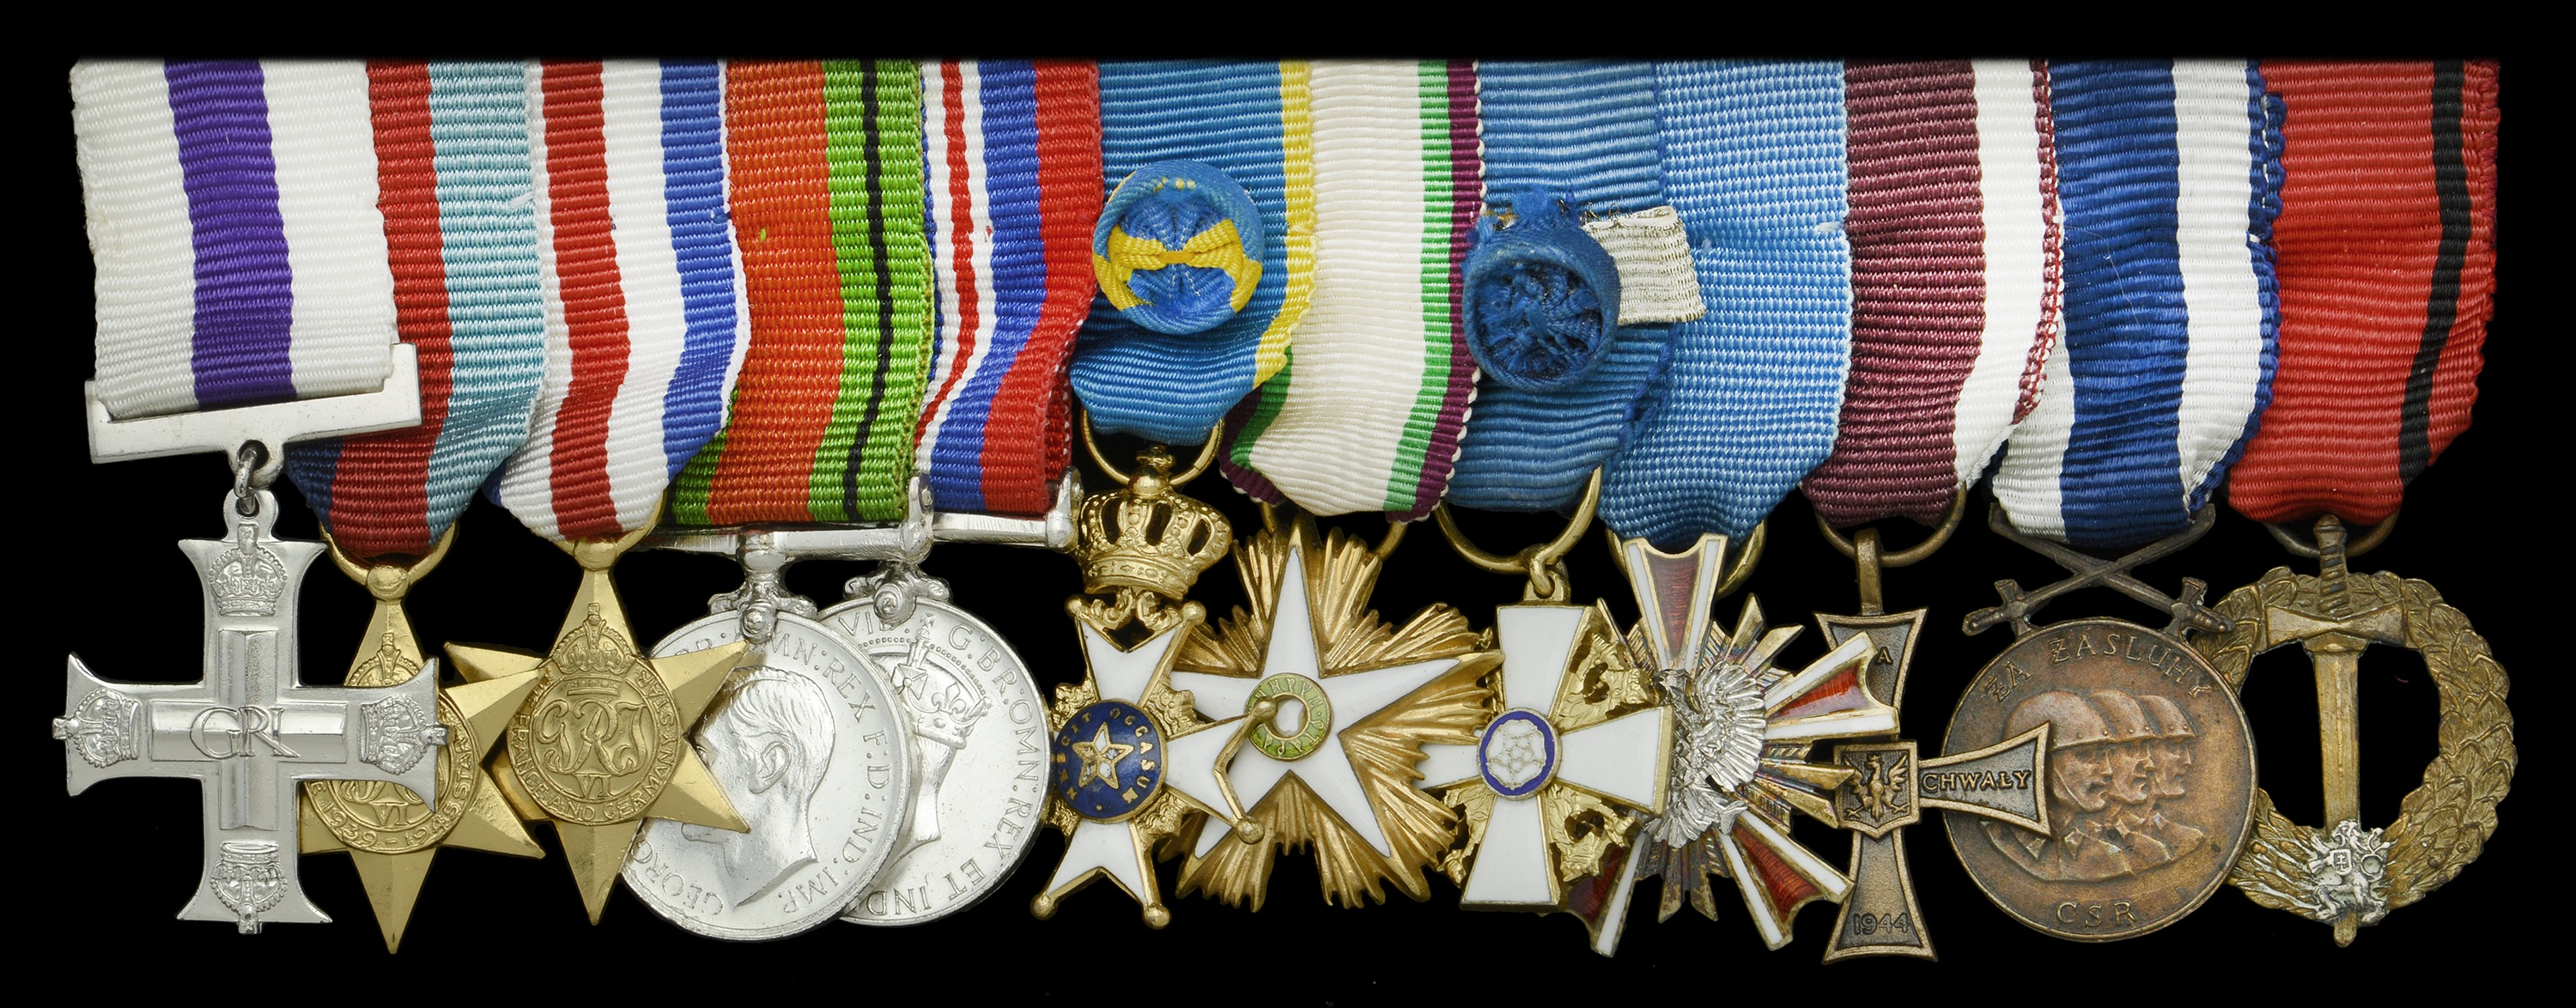 Groups and Single Decorations for Gallantry - Image 2 of 11